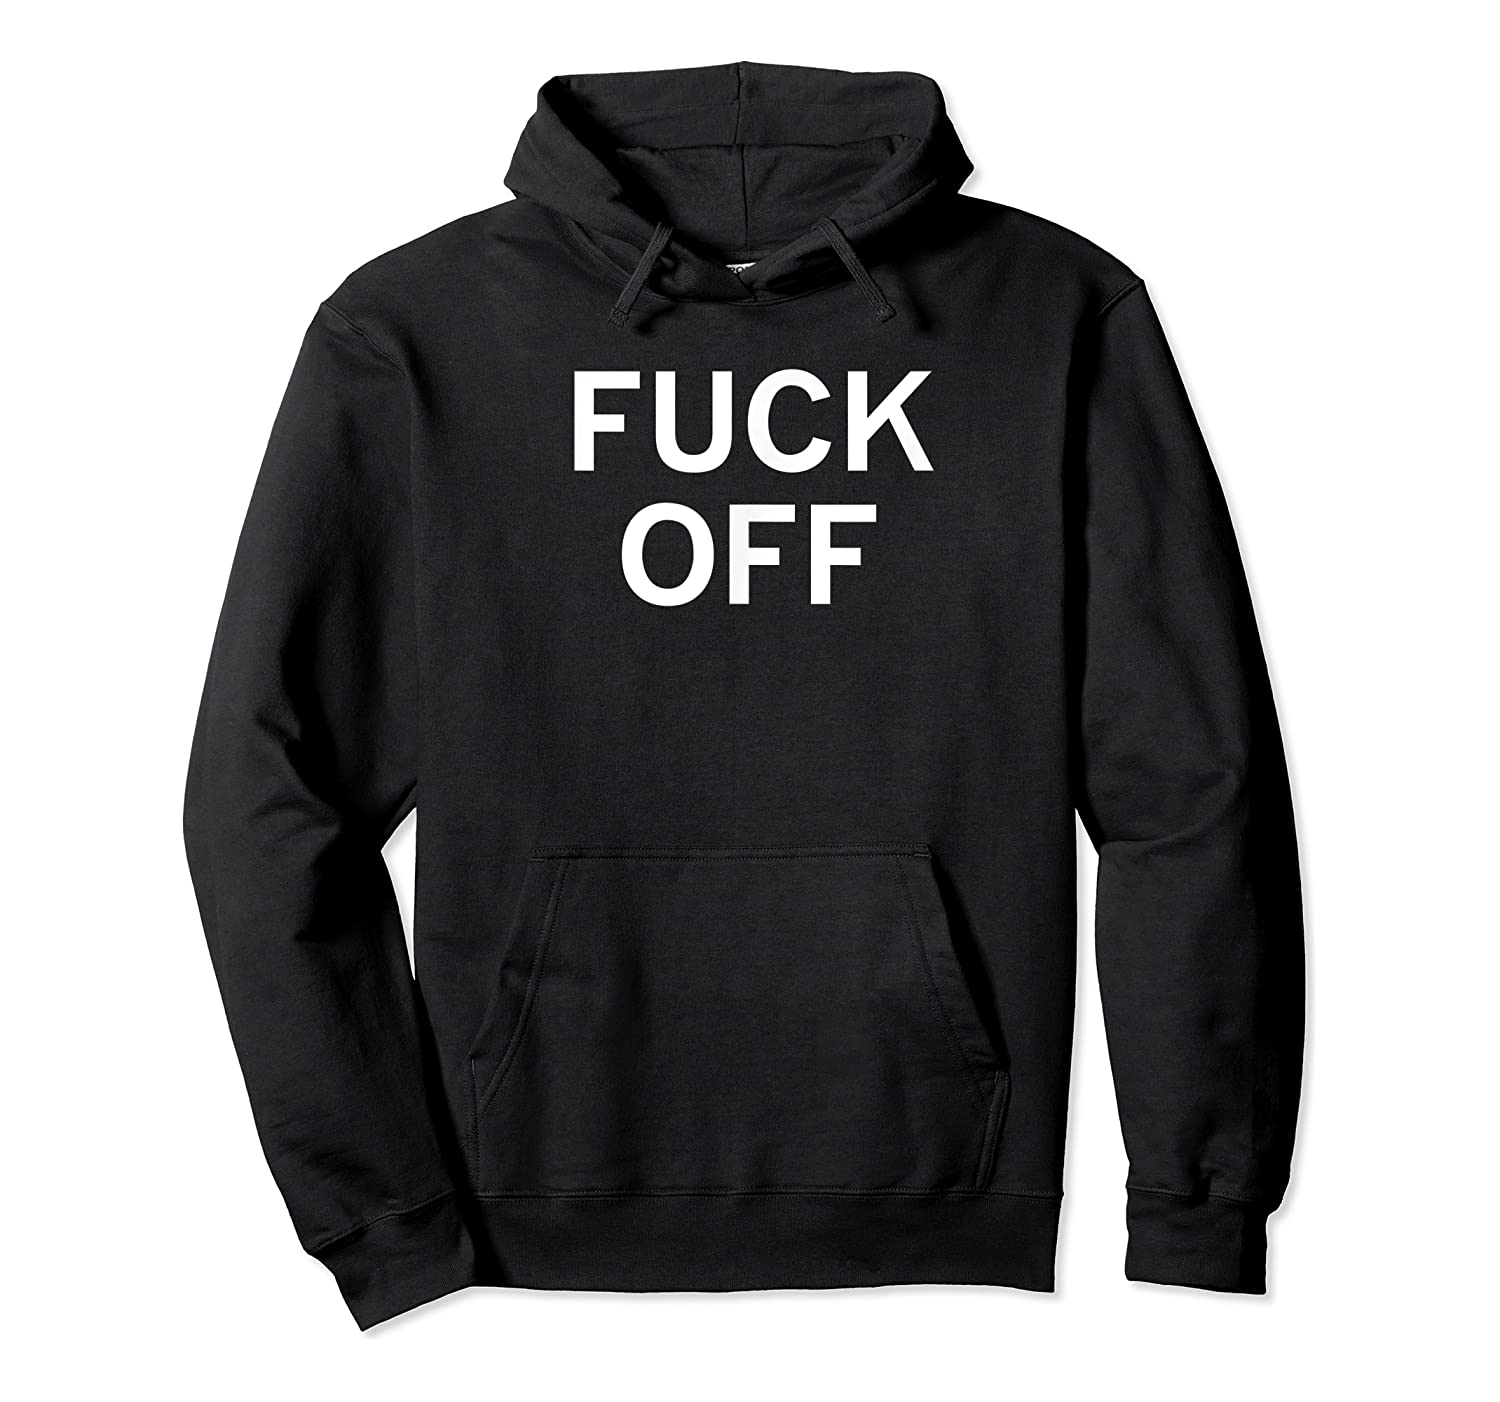 Fuck Off, Sarcastic, Funny, Joke, Family Shirts Unisex Pullover Hoodie